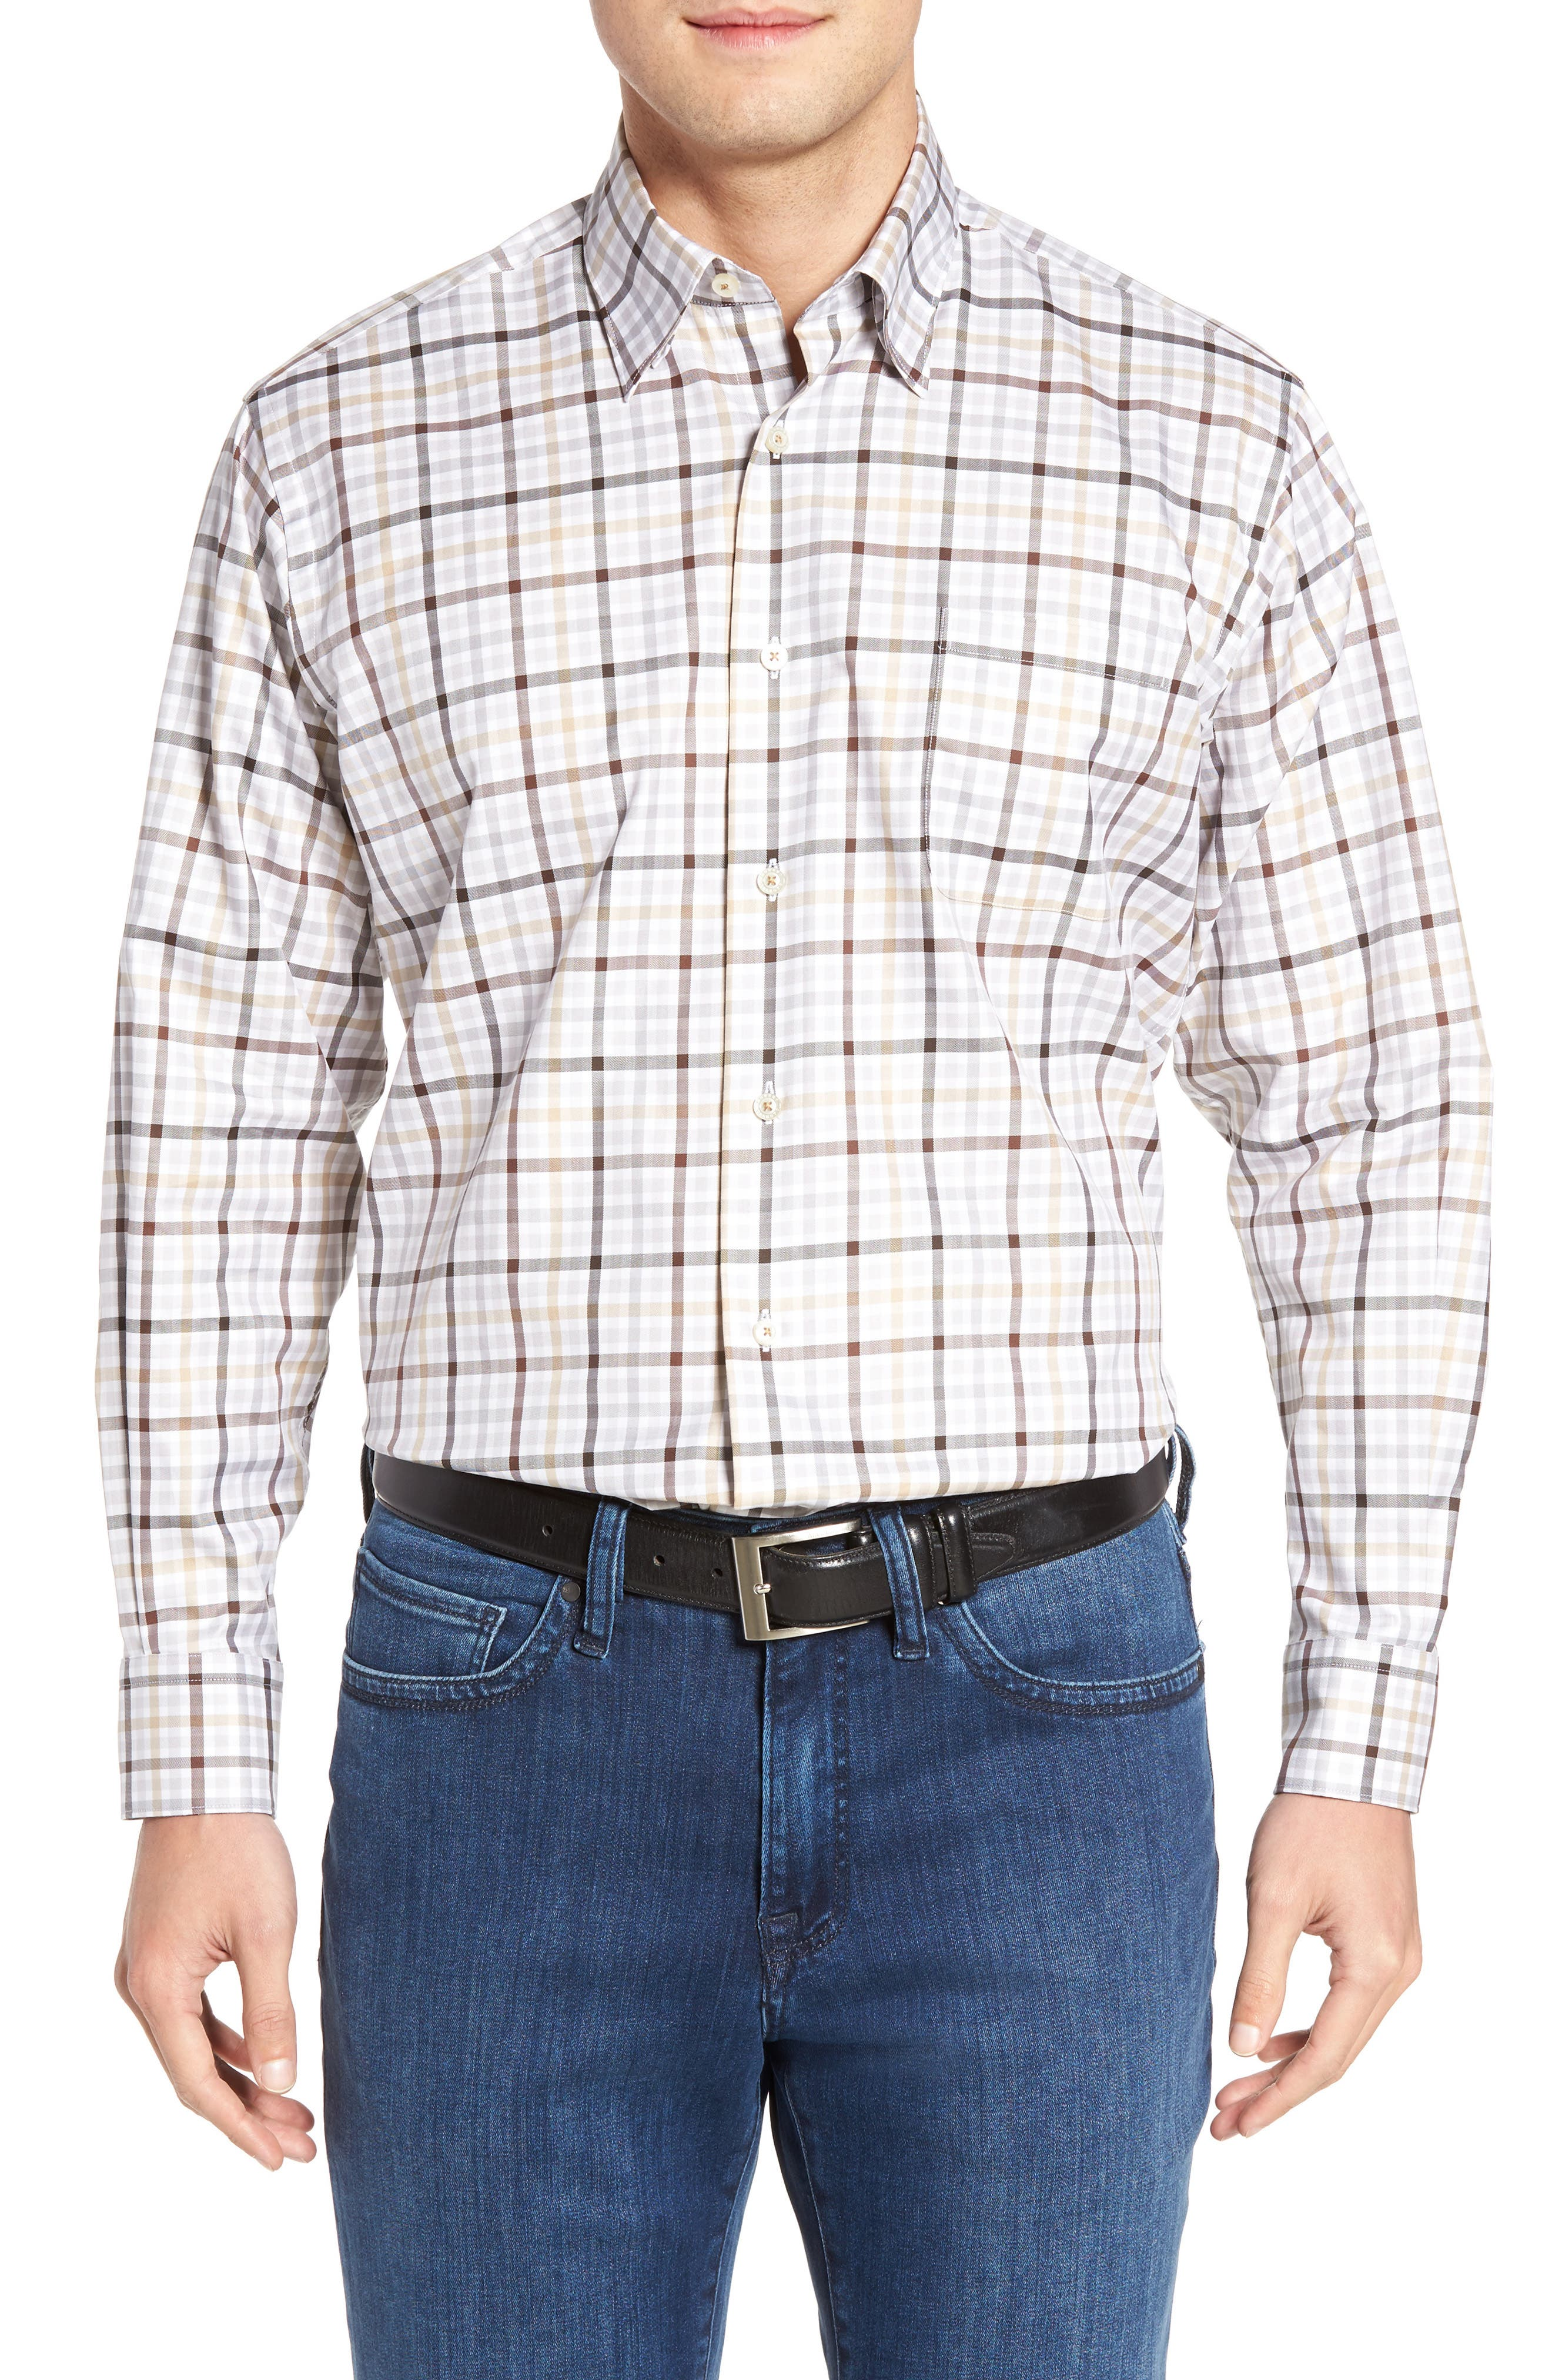 Anderson Classic Fit Plaid Micro Twill Sport Shirt,                             Main thumbnail 1, color,                             201